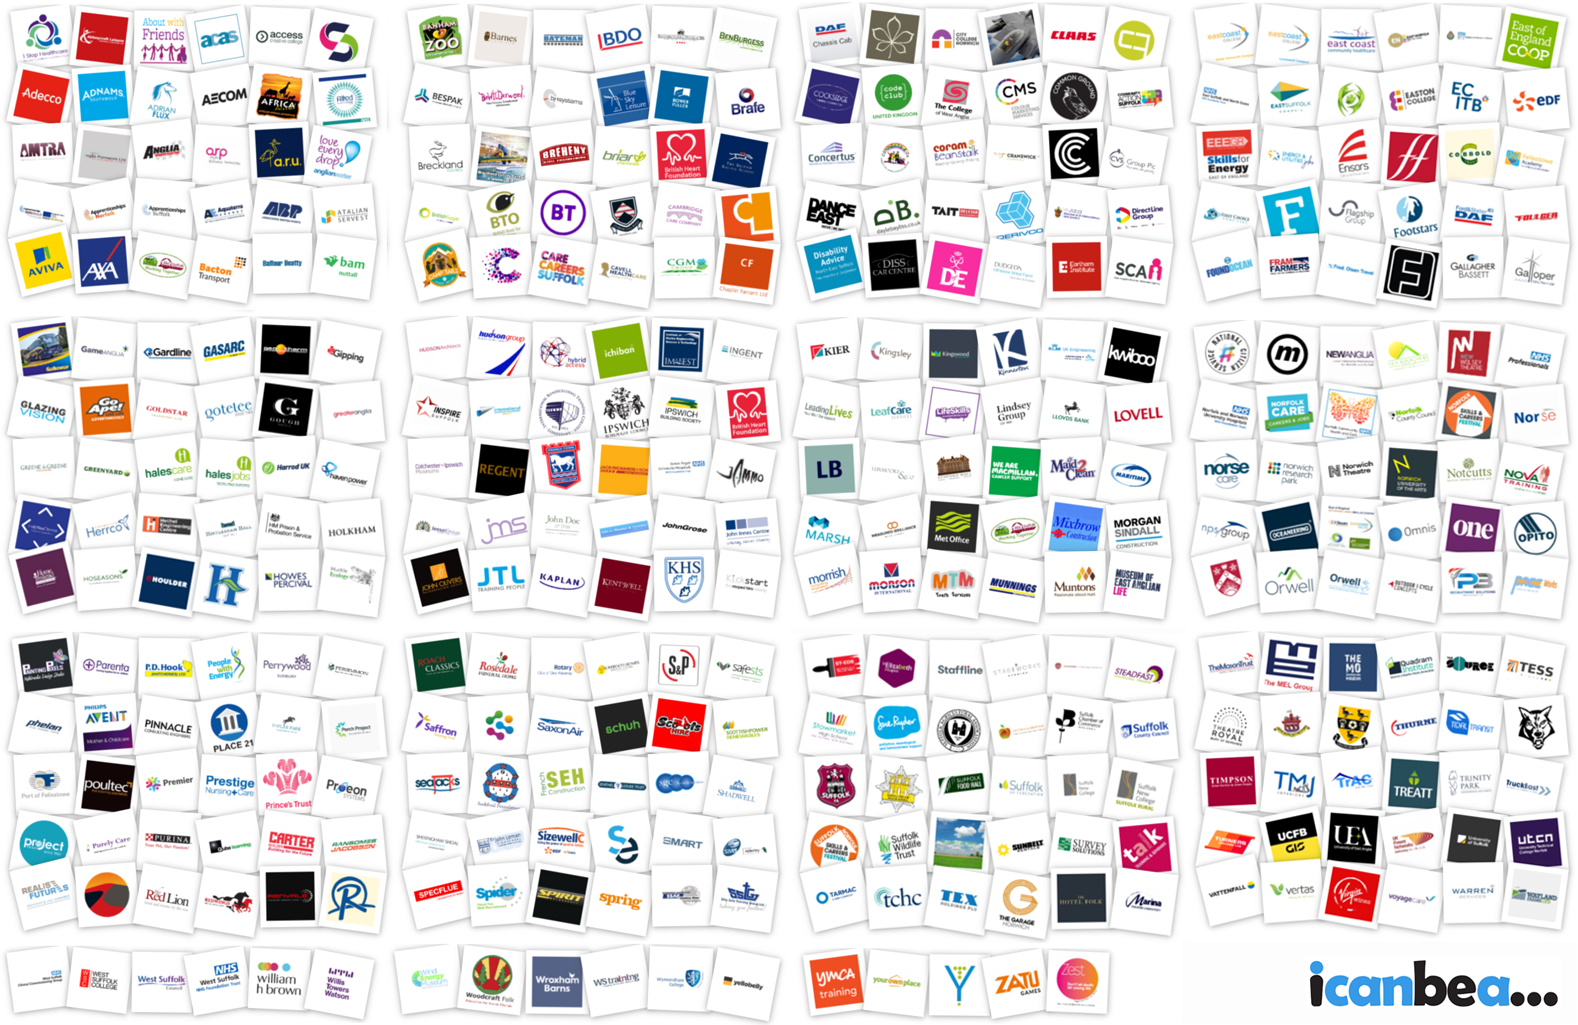 Photo Collage of icanbea... Organisations - up-to-date